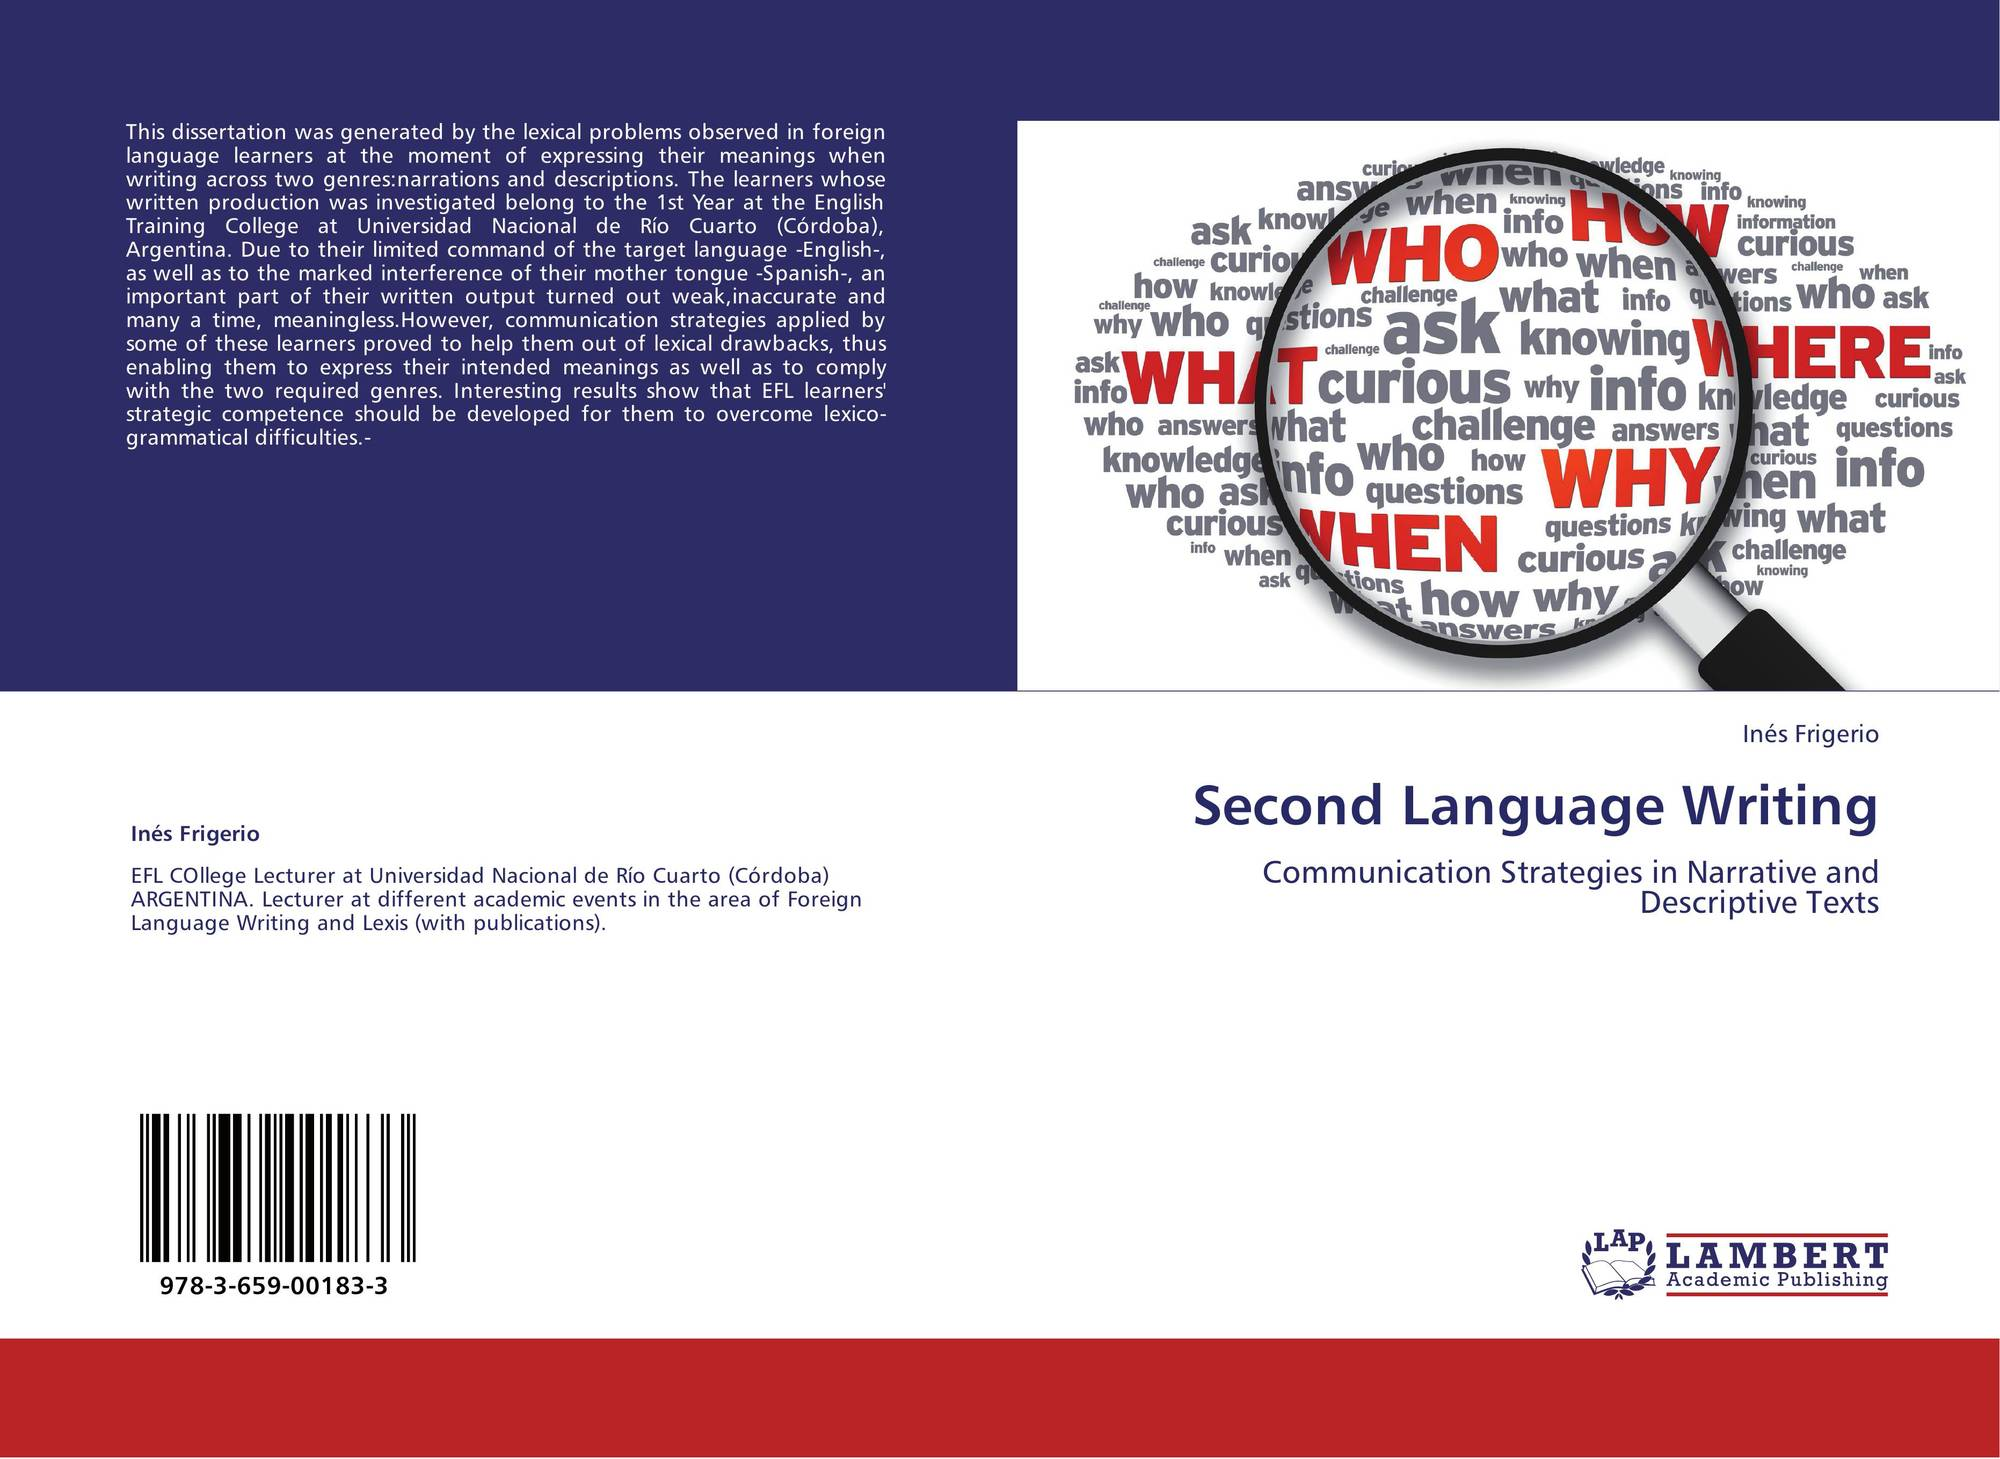 english linguistics essays English, writing and linguistics english is another of wou's versatile and career-focused majors if you are interested in languages, literature or writing, this is the program for you.